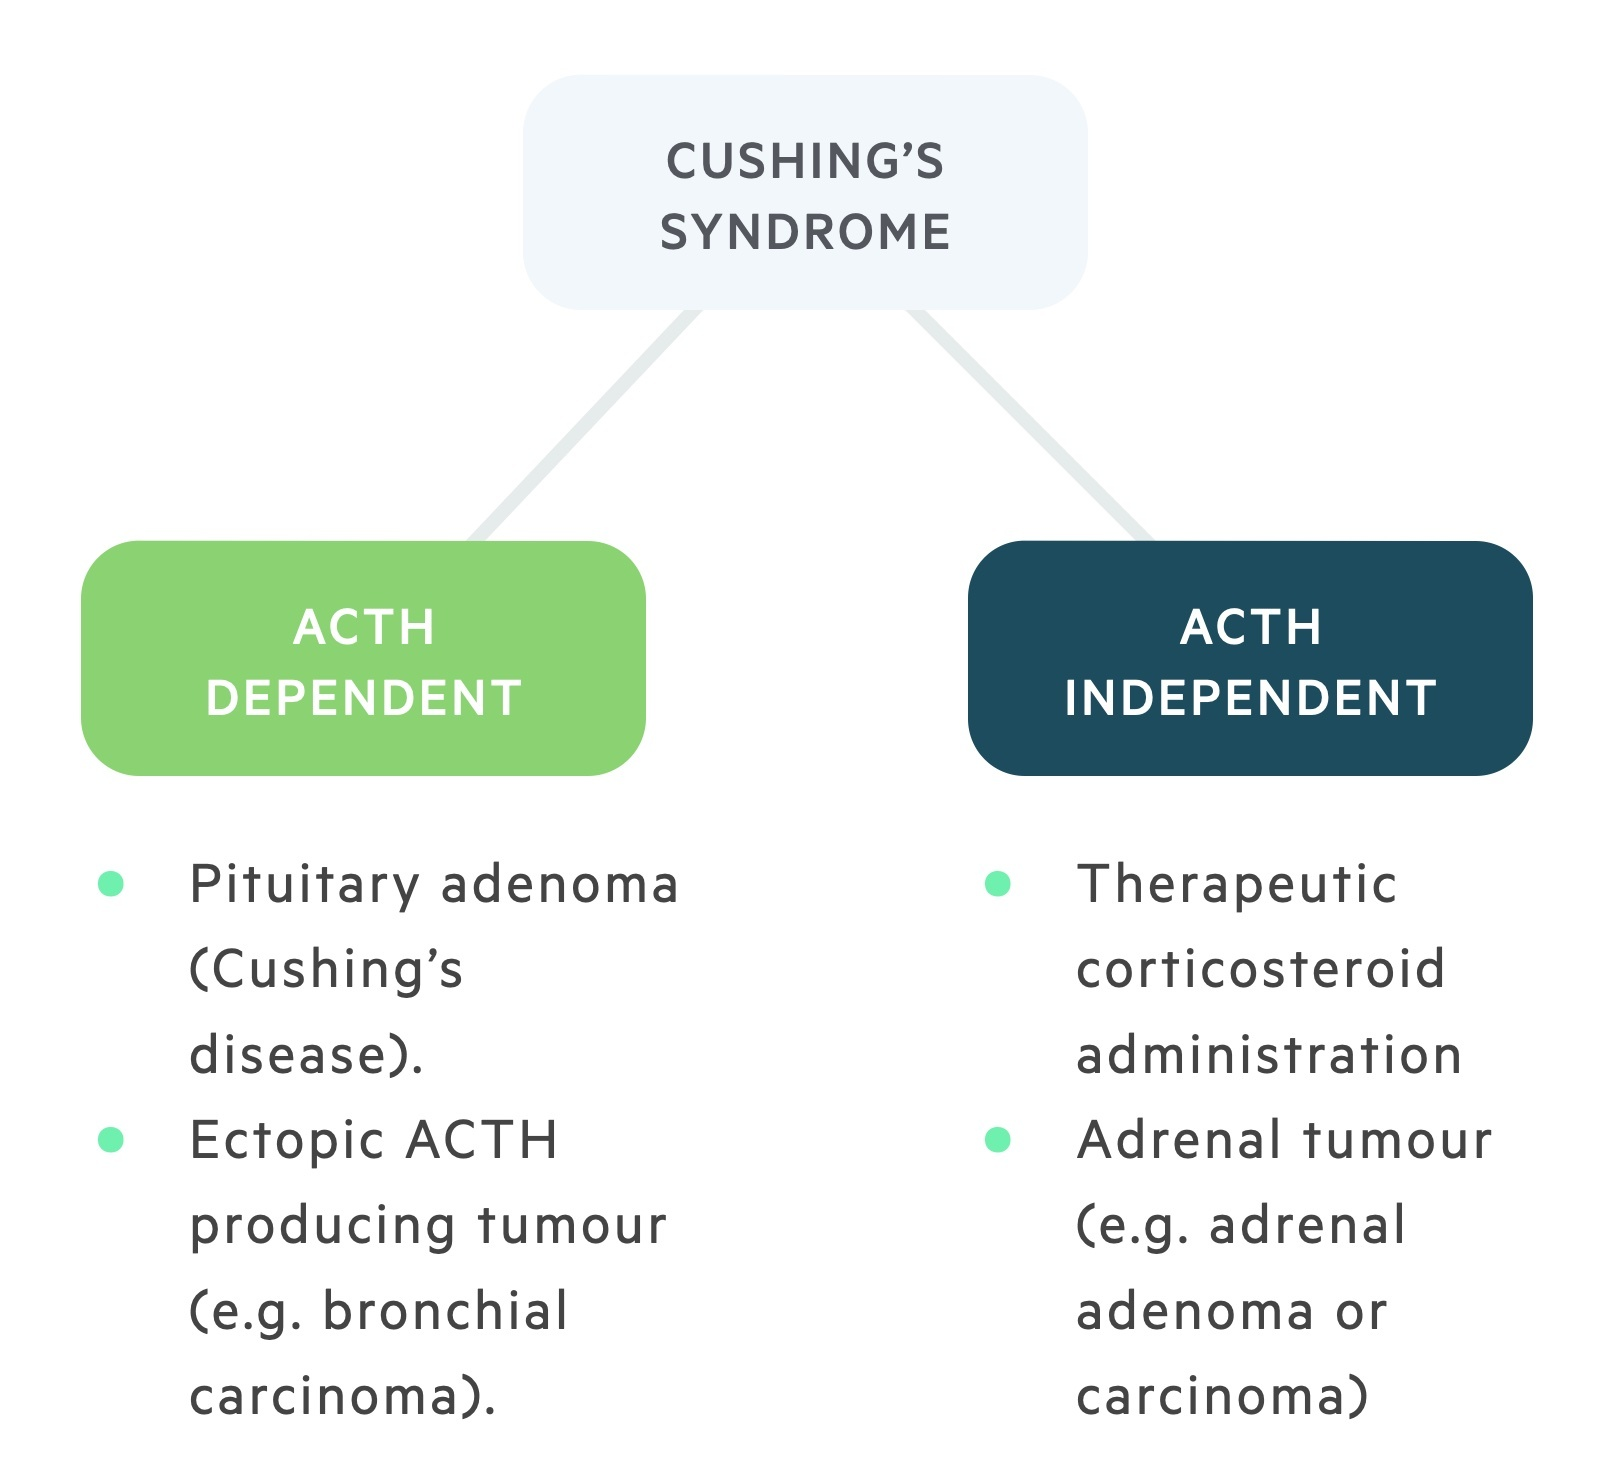 Aetiology of Cushings syndrome